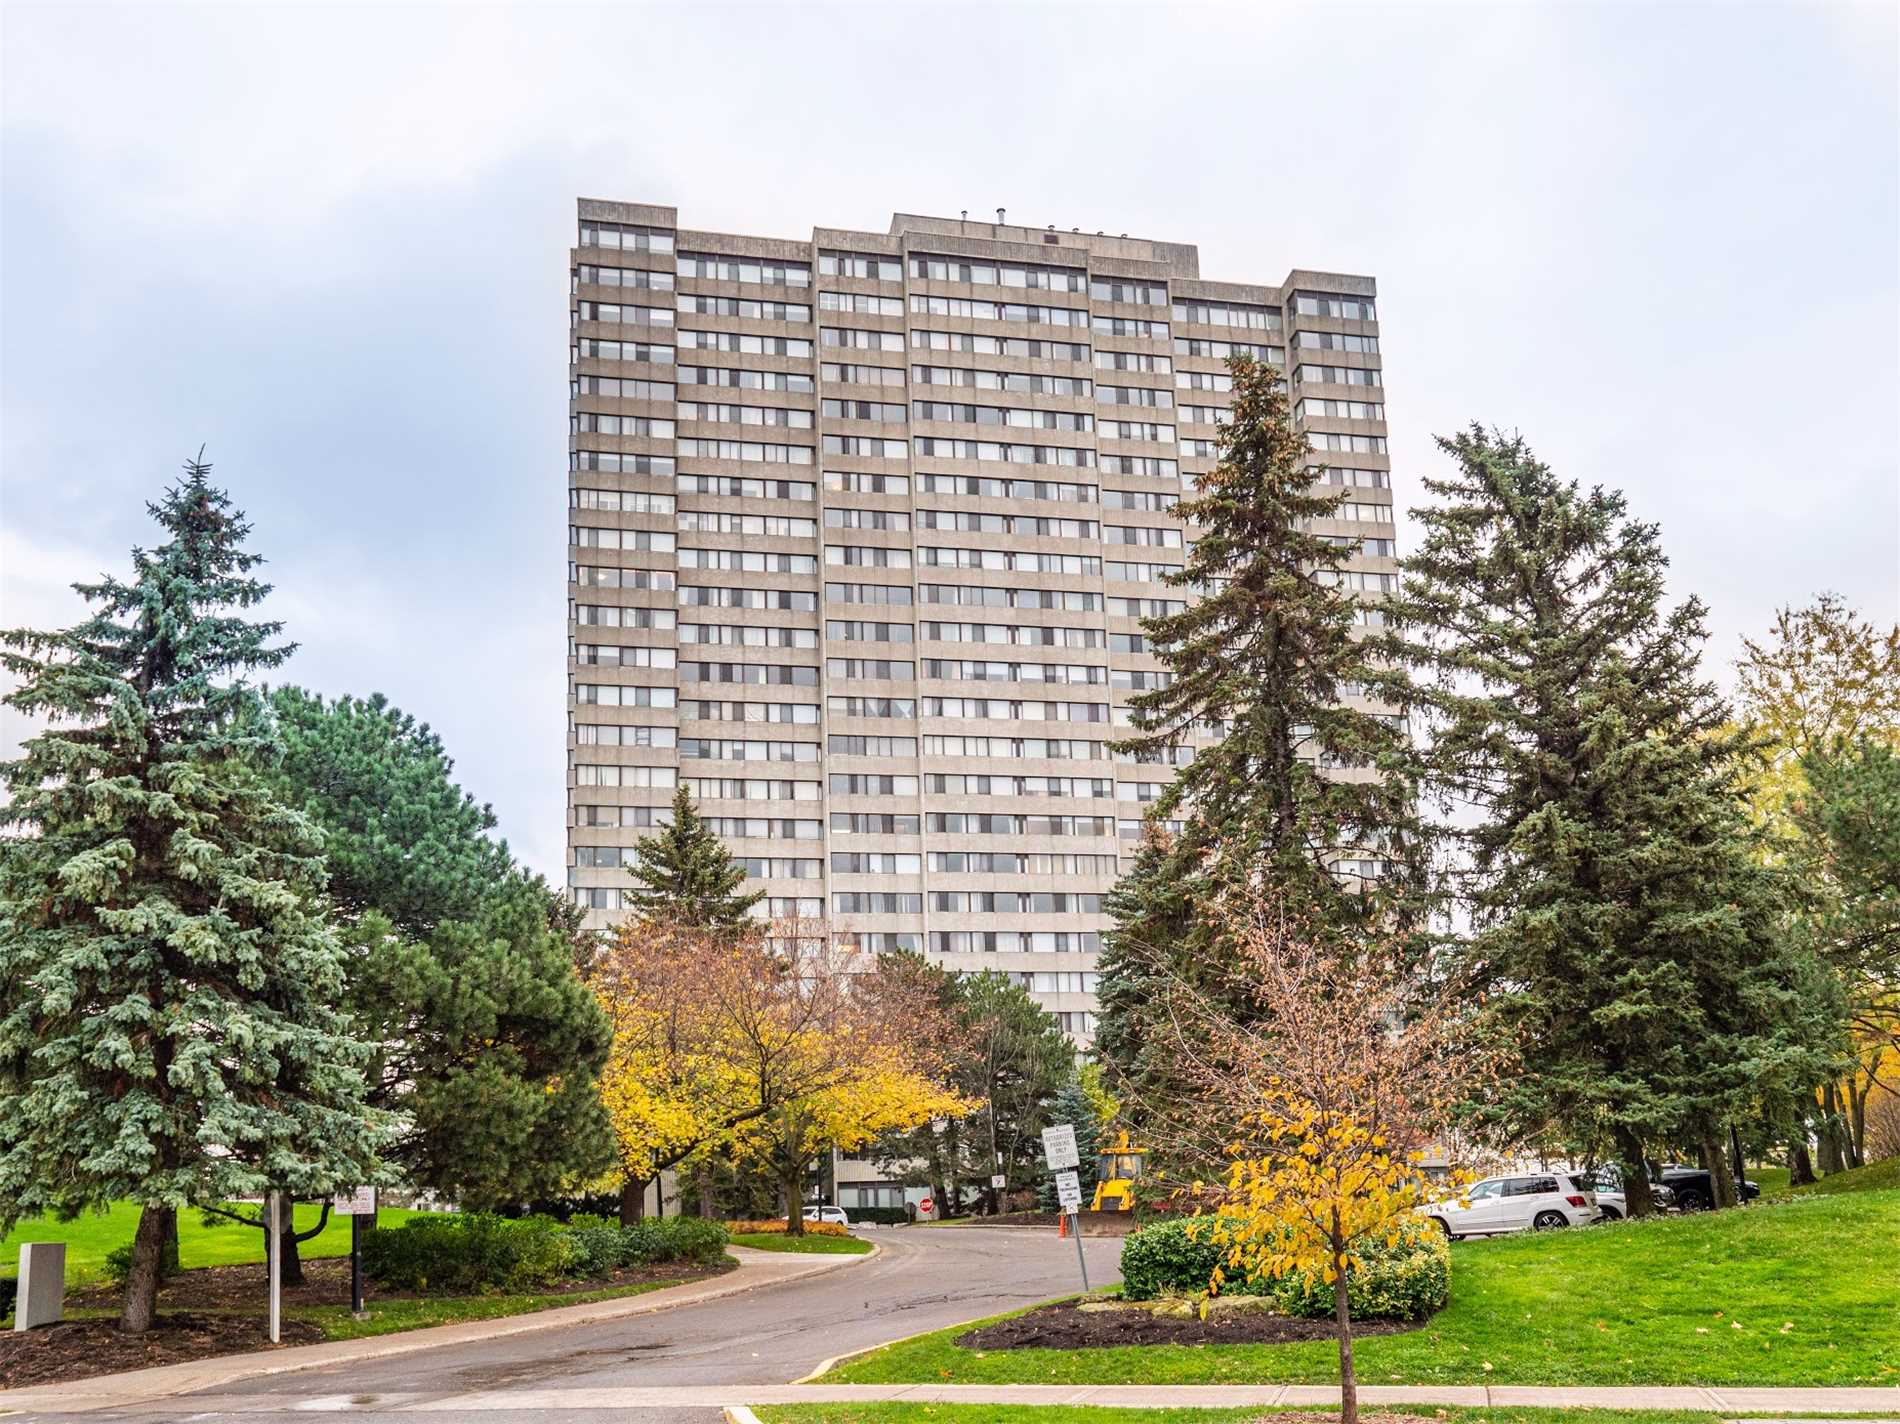 For Sale: 1004 - 133 Torresdale Avenue, Toronto, ON   2 Bed, 2 Bath Condo for $528000.00. See 20 photos!